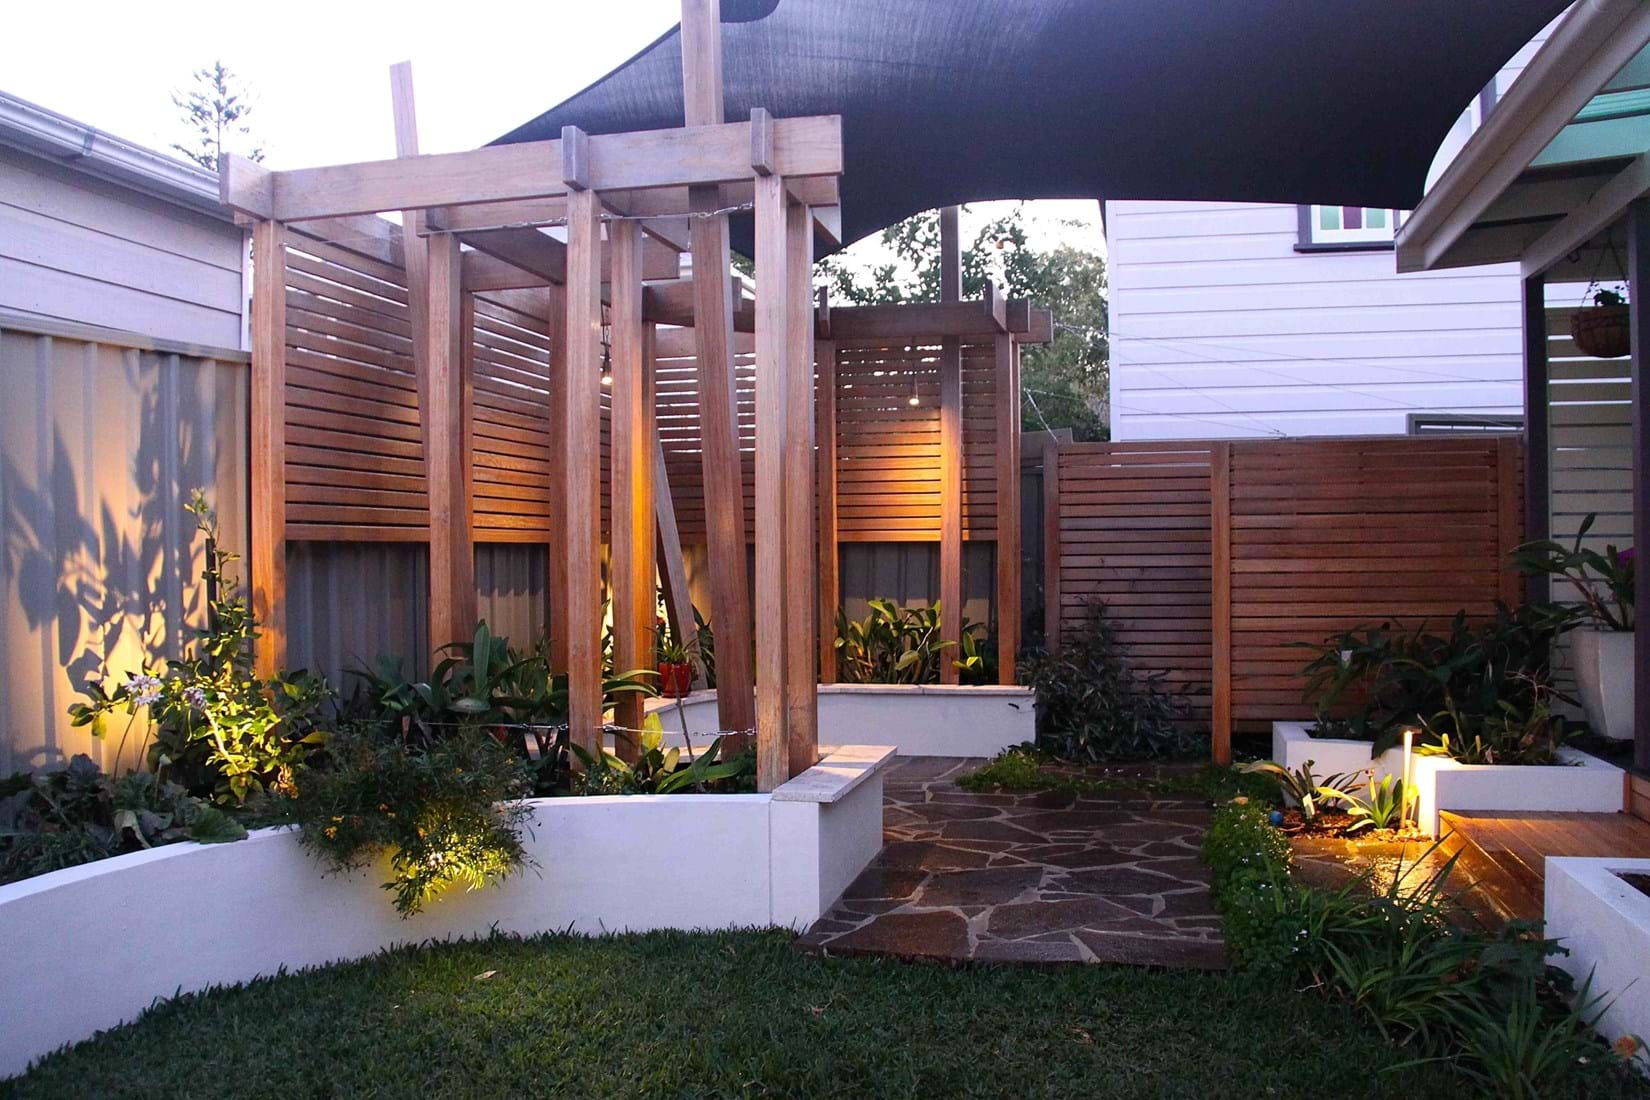 Dirty Girl Designs Landscape design for contemporary residential